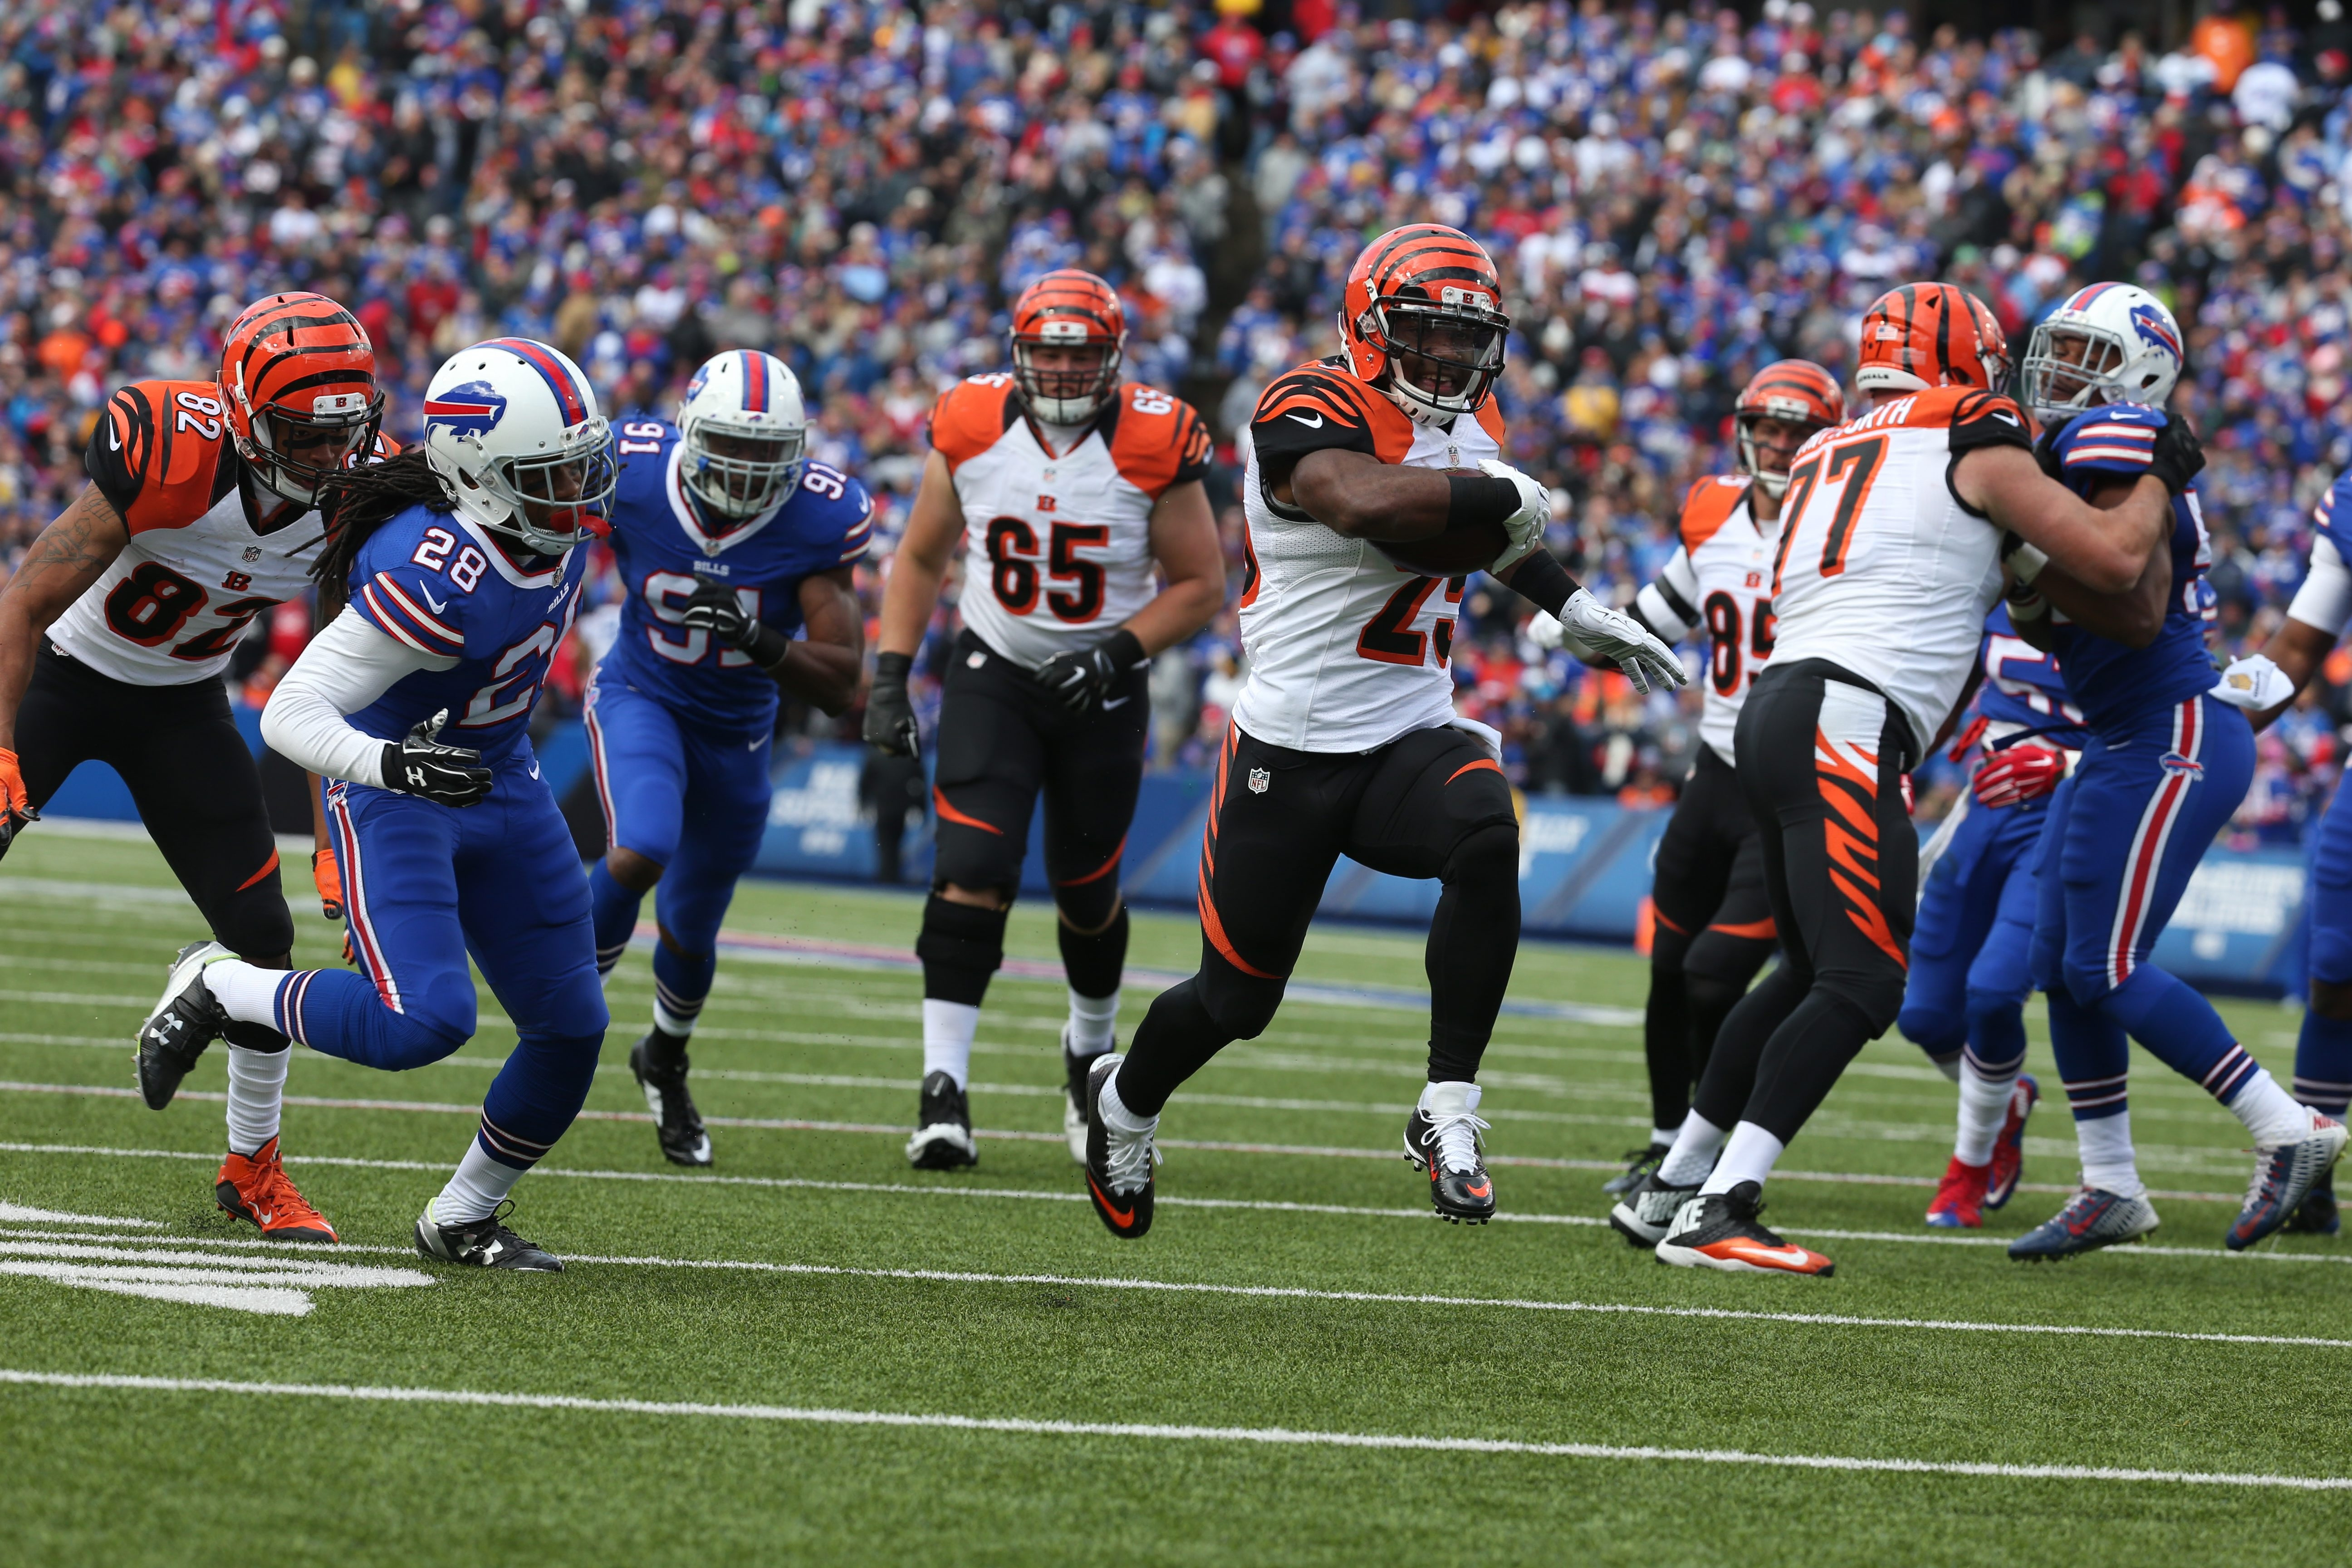 Bengals running back Giovani Bernard races through open space for a 17-yard touchdown in the first half.  Bernard and Jeremy Hill combined for 106 rushing yards.